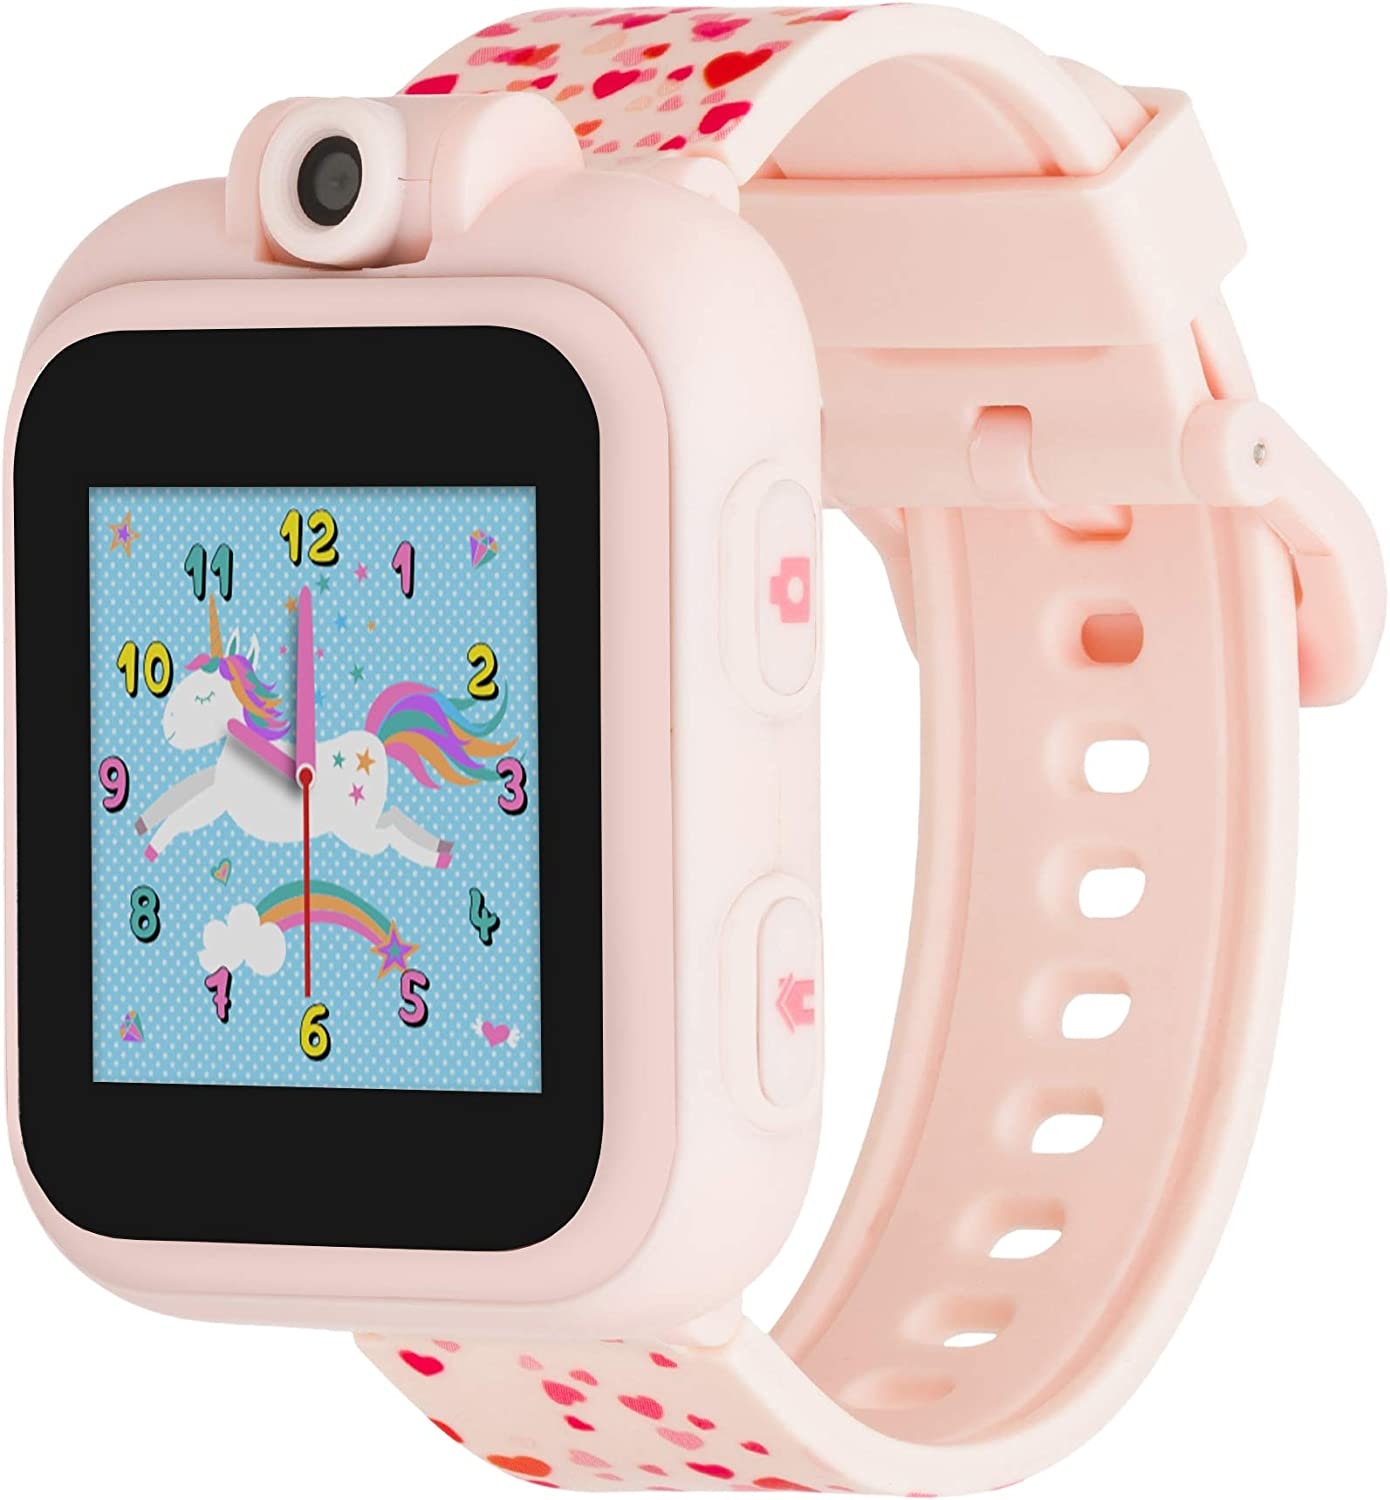 Amazon.com: iTouch Playzoom - Reloj inteligente para niños ...